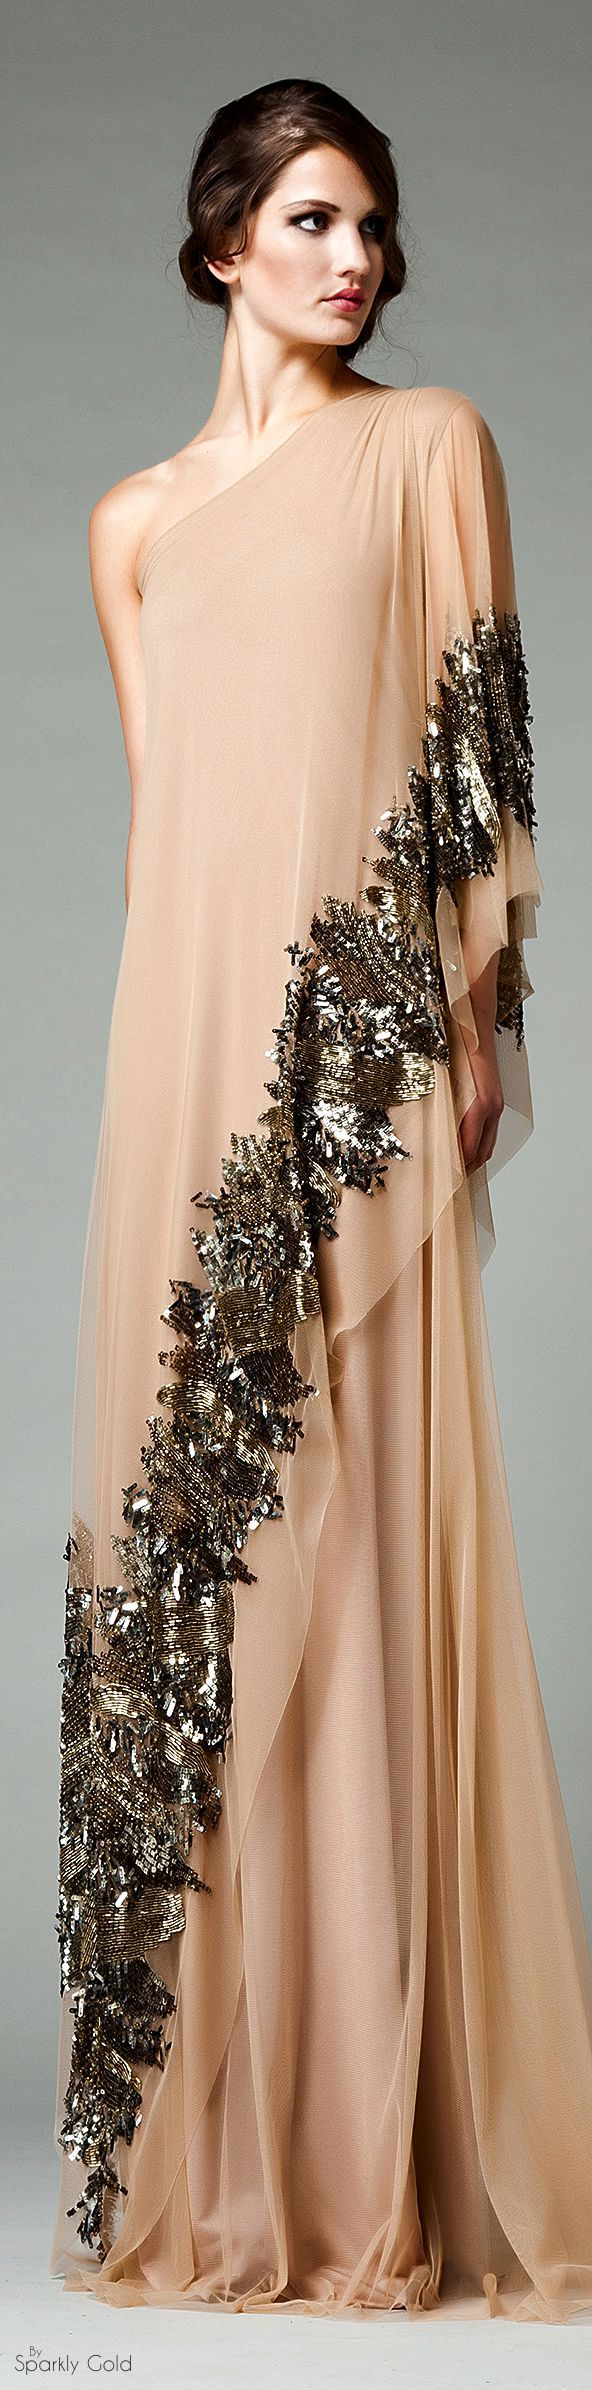 //ELEGANCE ~ Veloudakis Fall 2015 #fashion #womenswear #couture